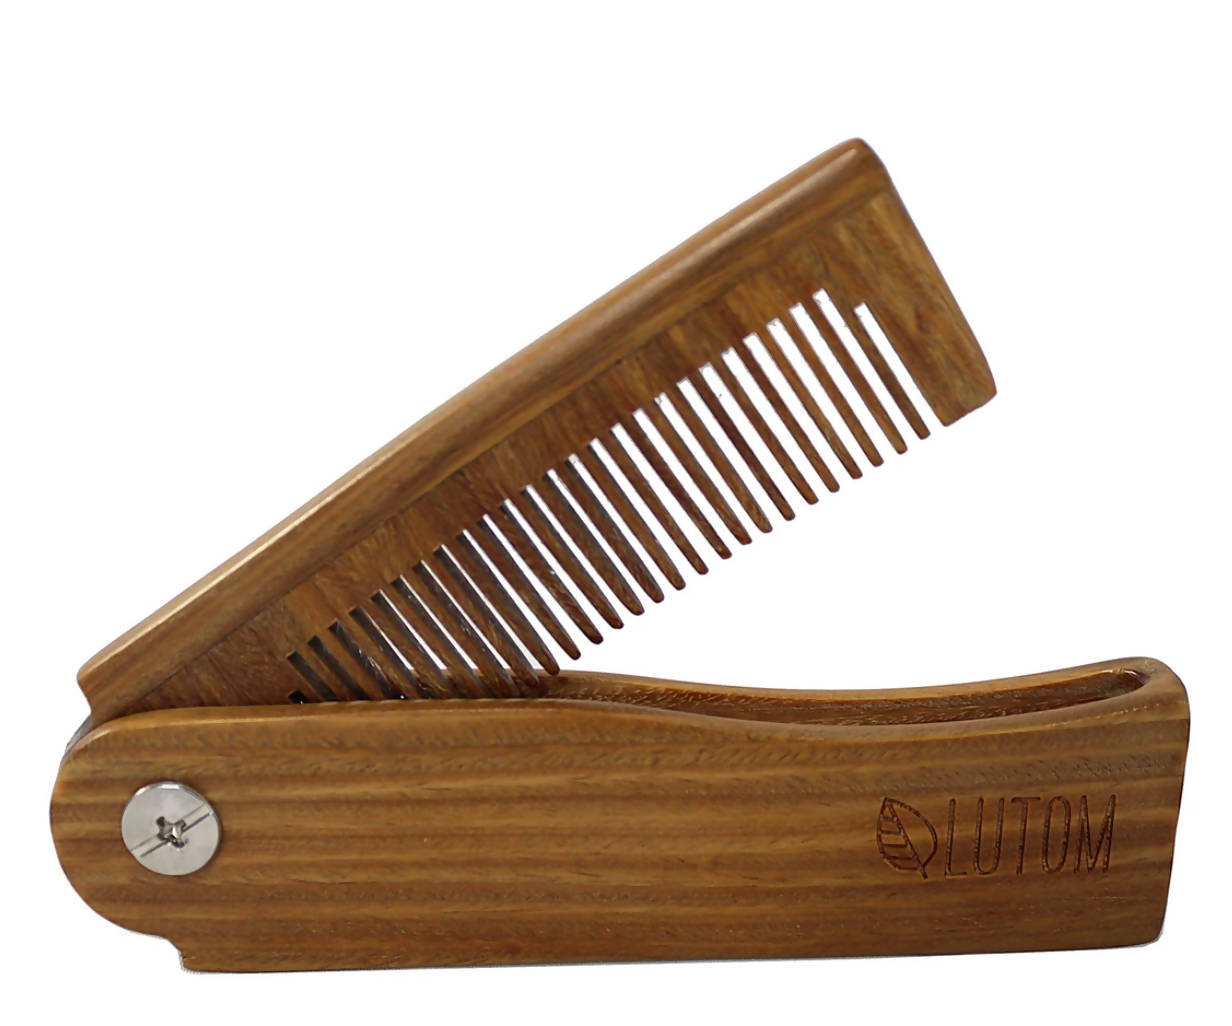 The Gentleman's Comb